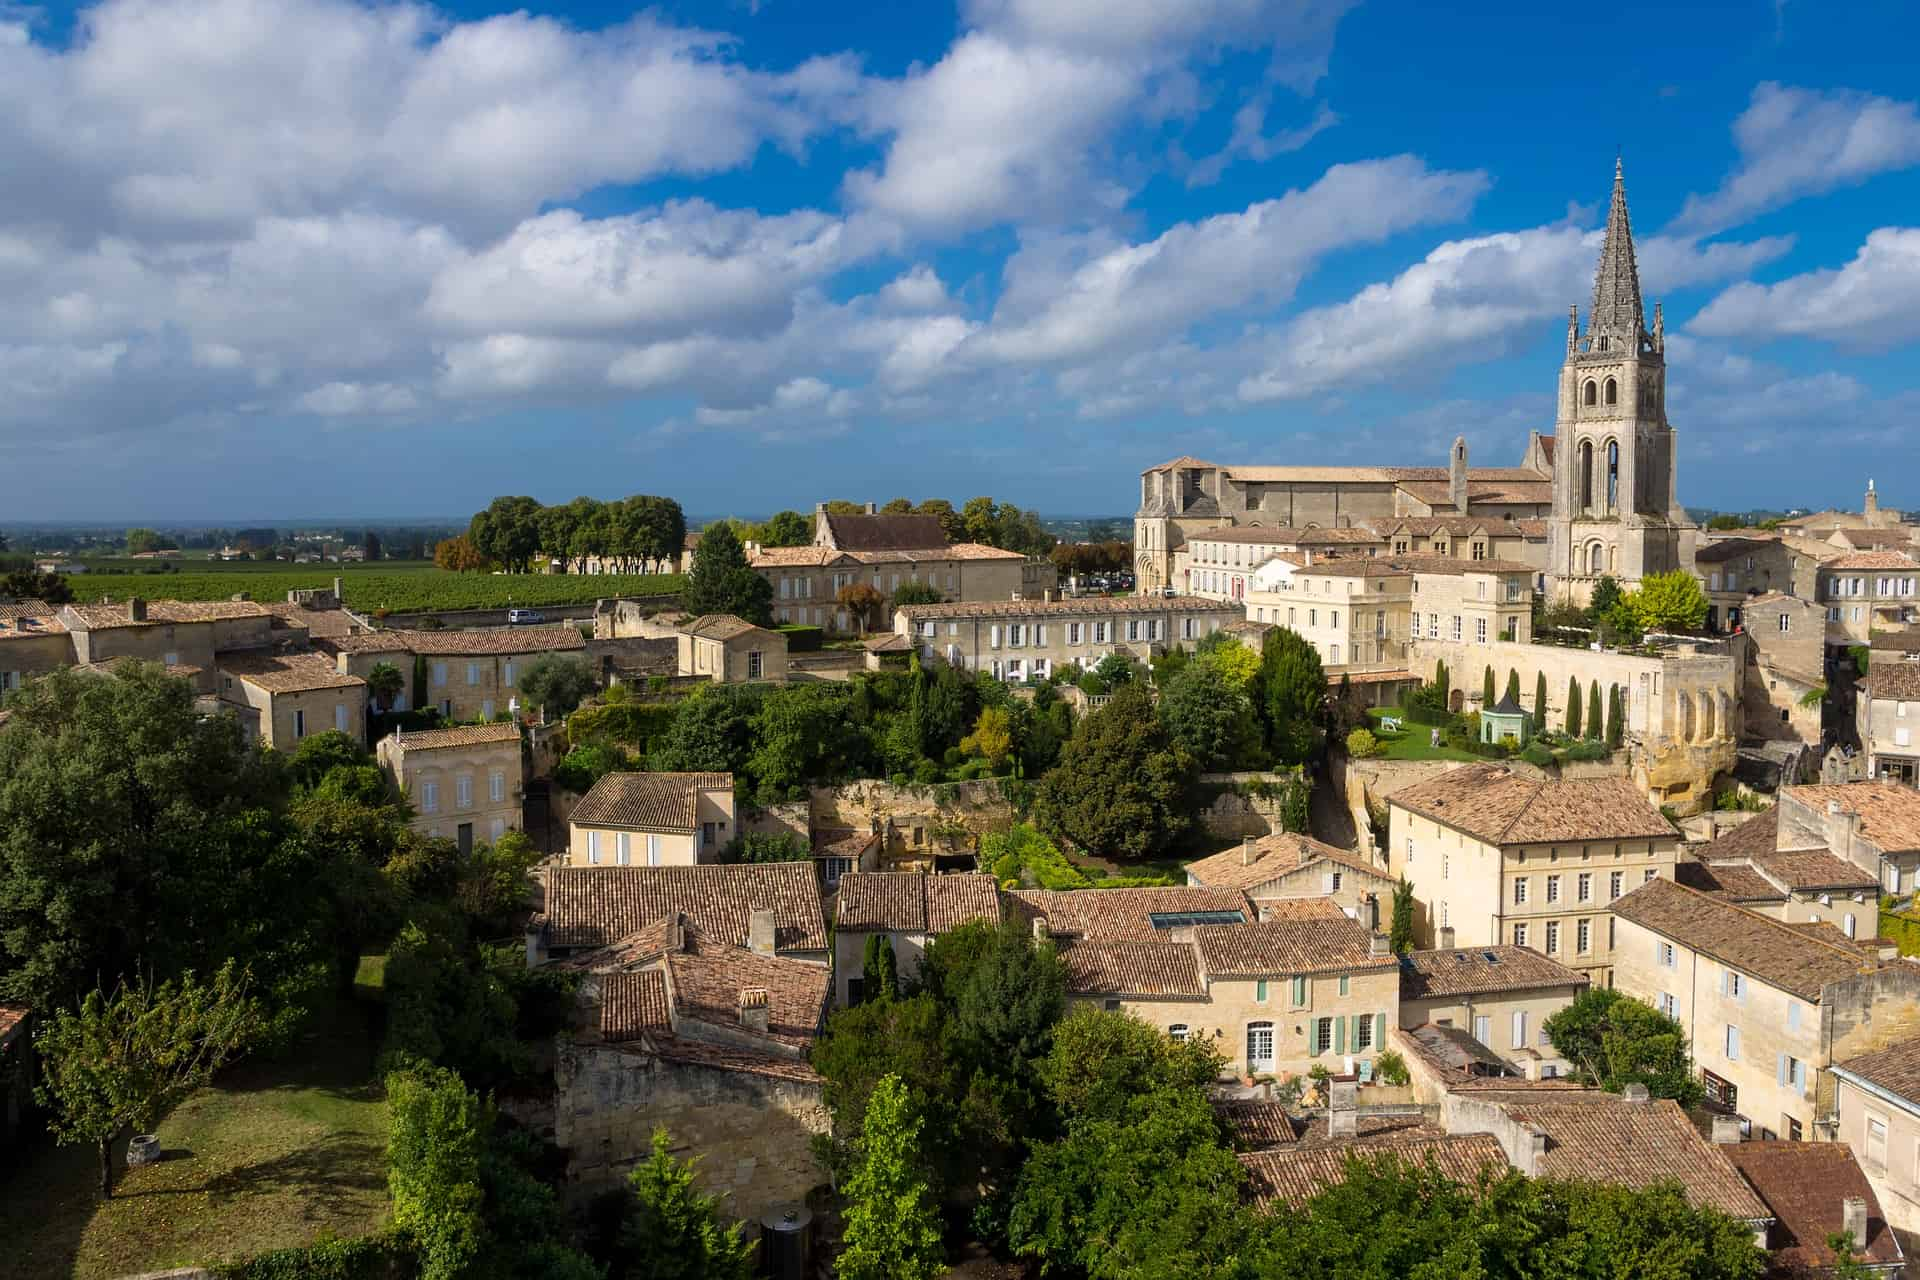 A town in the Saint-Emilion wine region